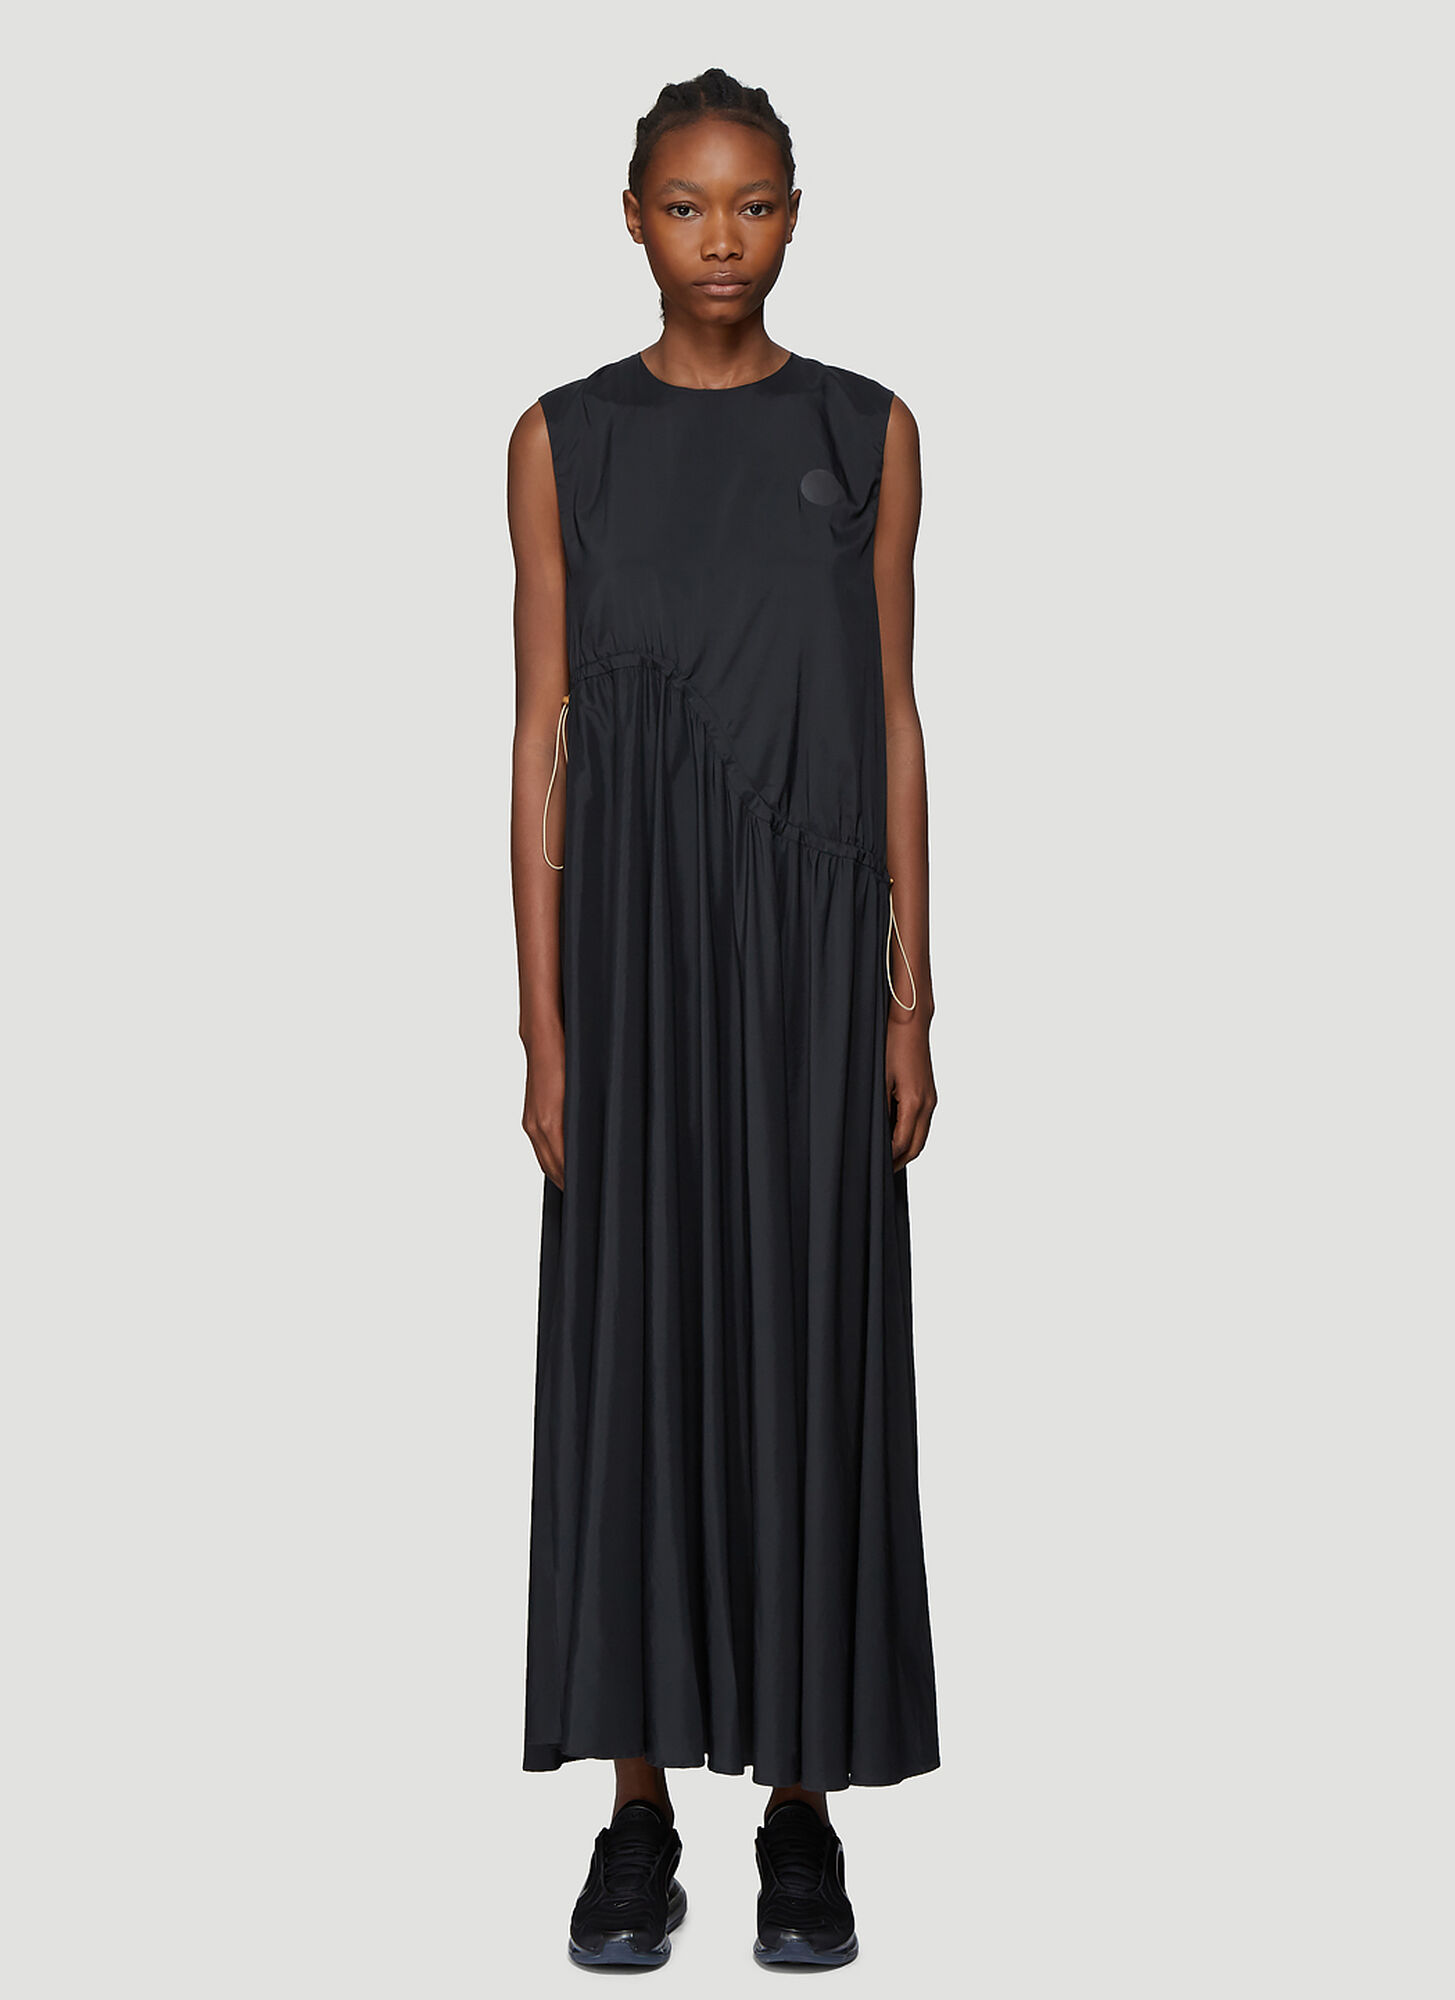 Laerke Andersen Wave Dress in Black